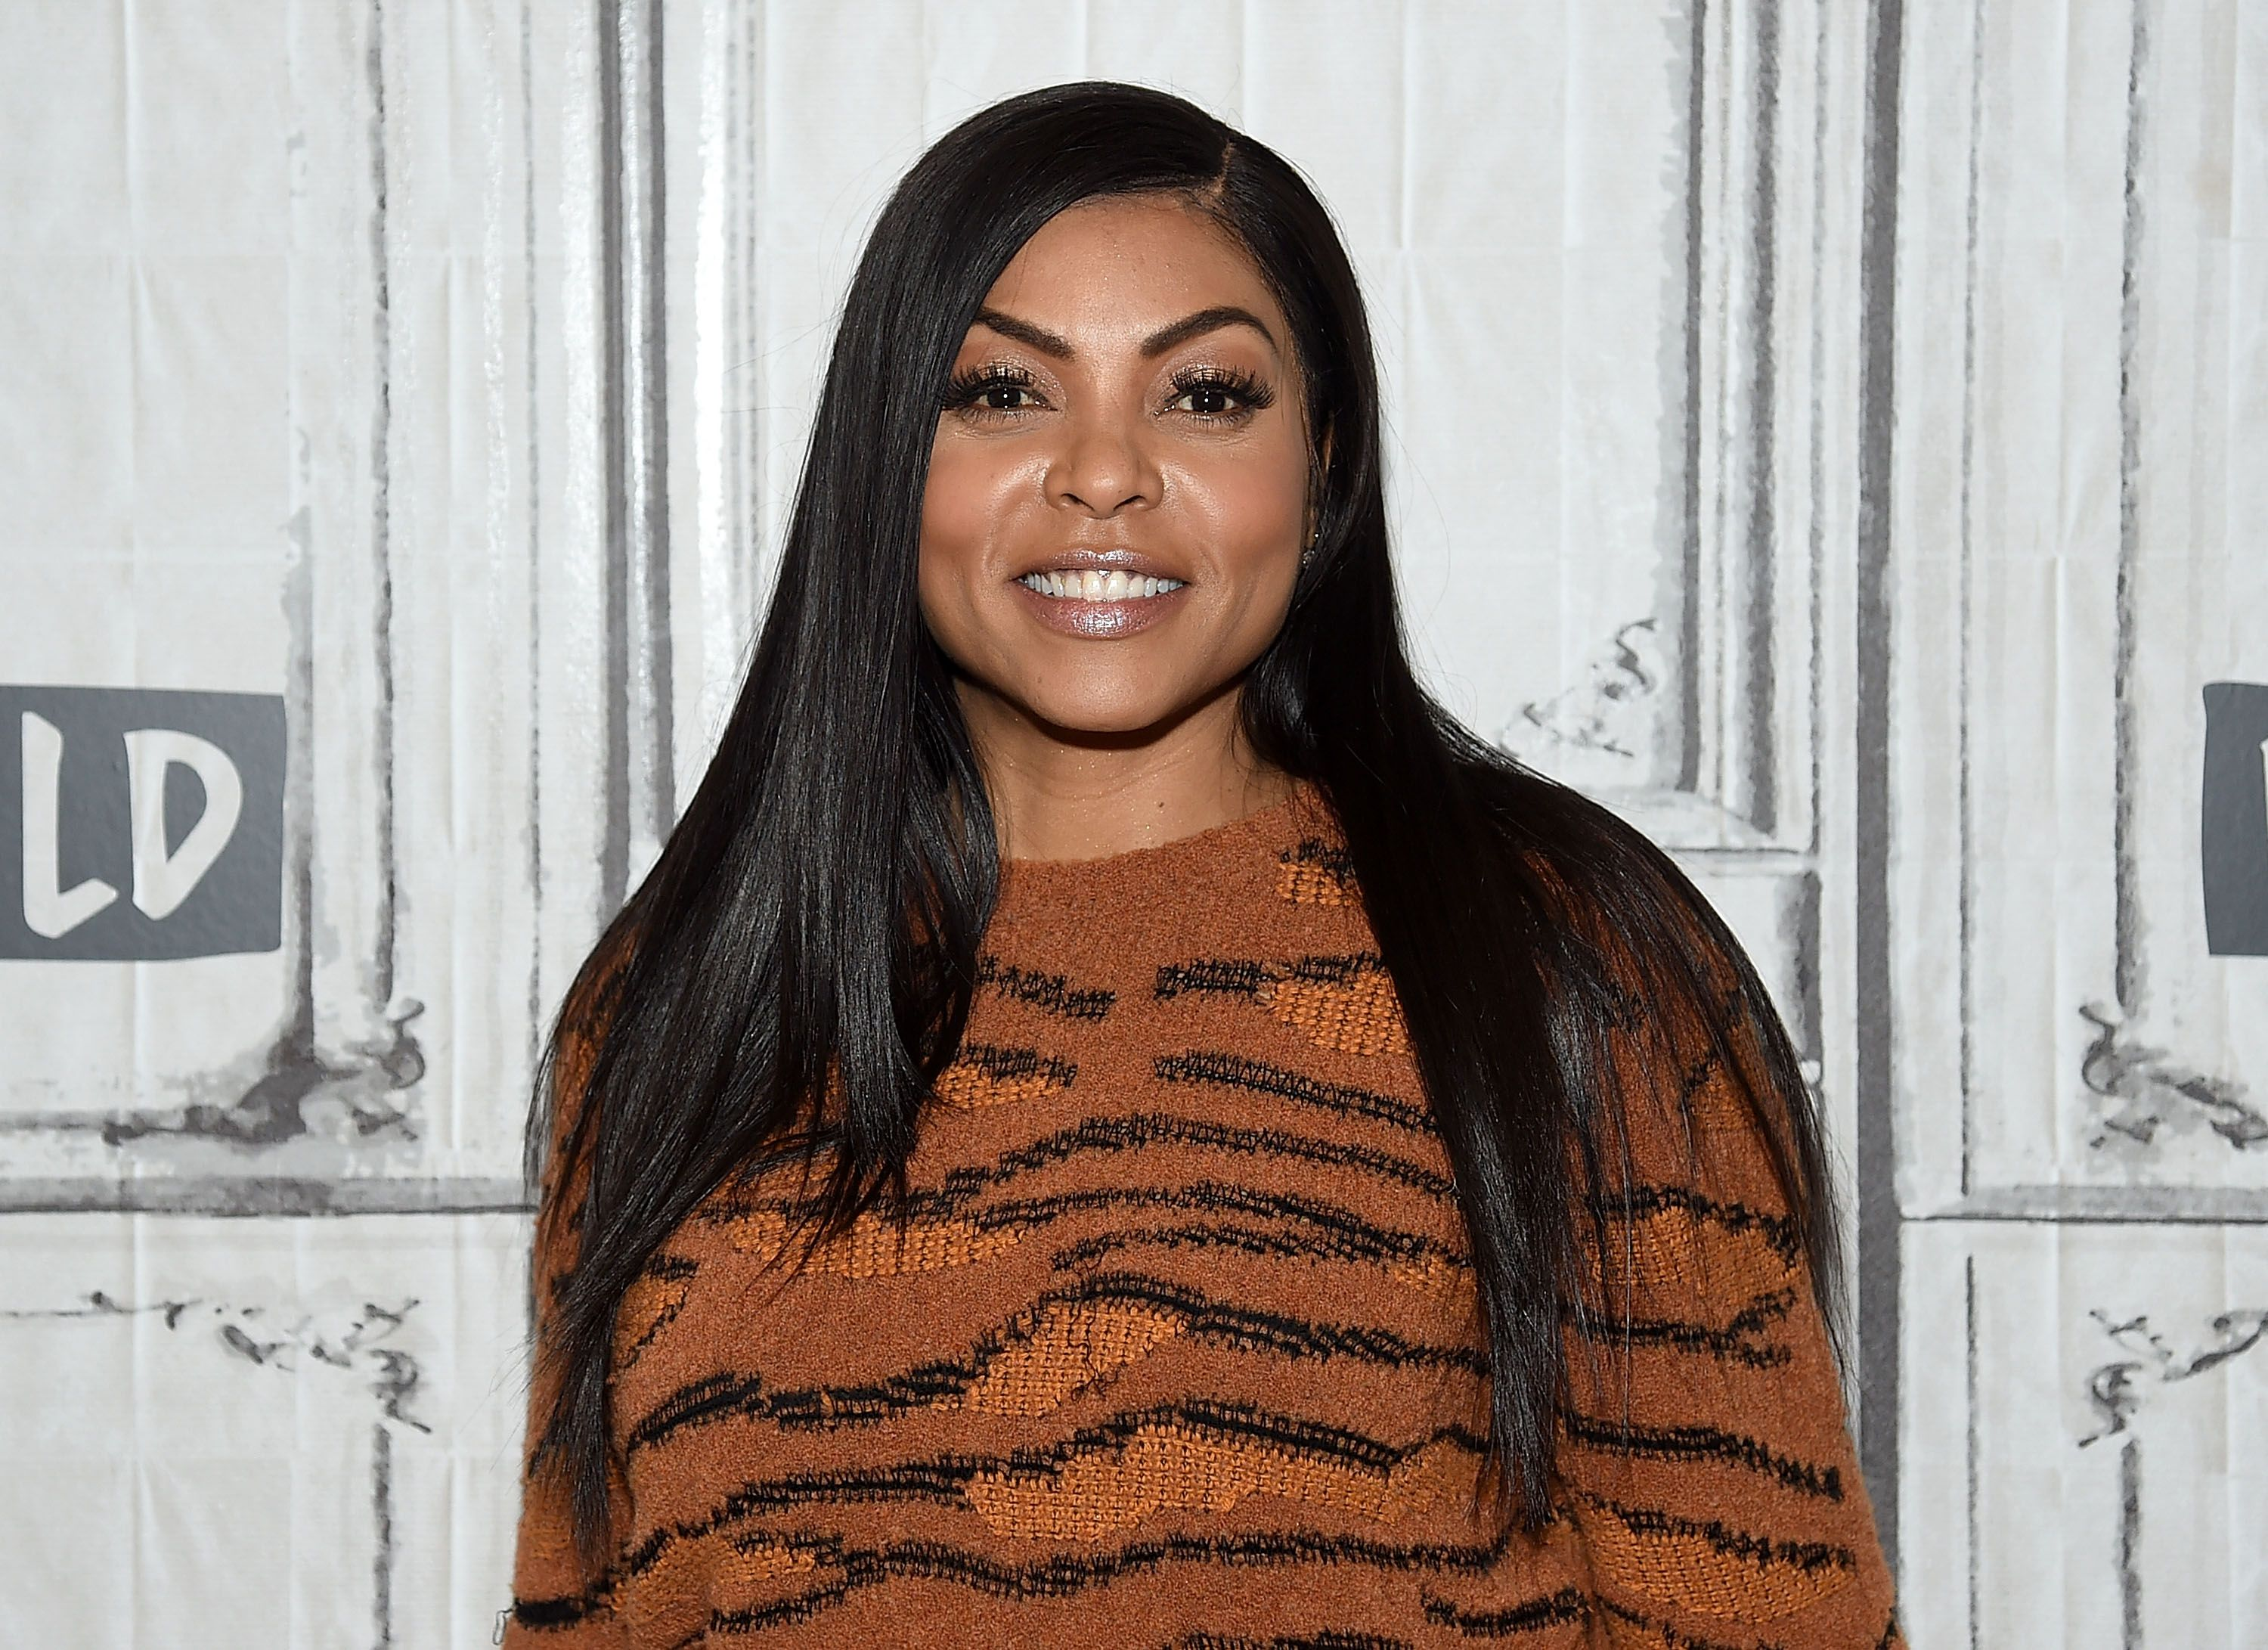 """Taraji P. Henson at Build series to discuss her film, """"Acrimony"""" at Build Studio on March 26, 2018 